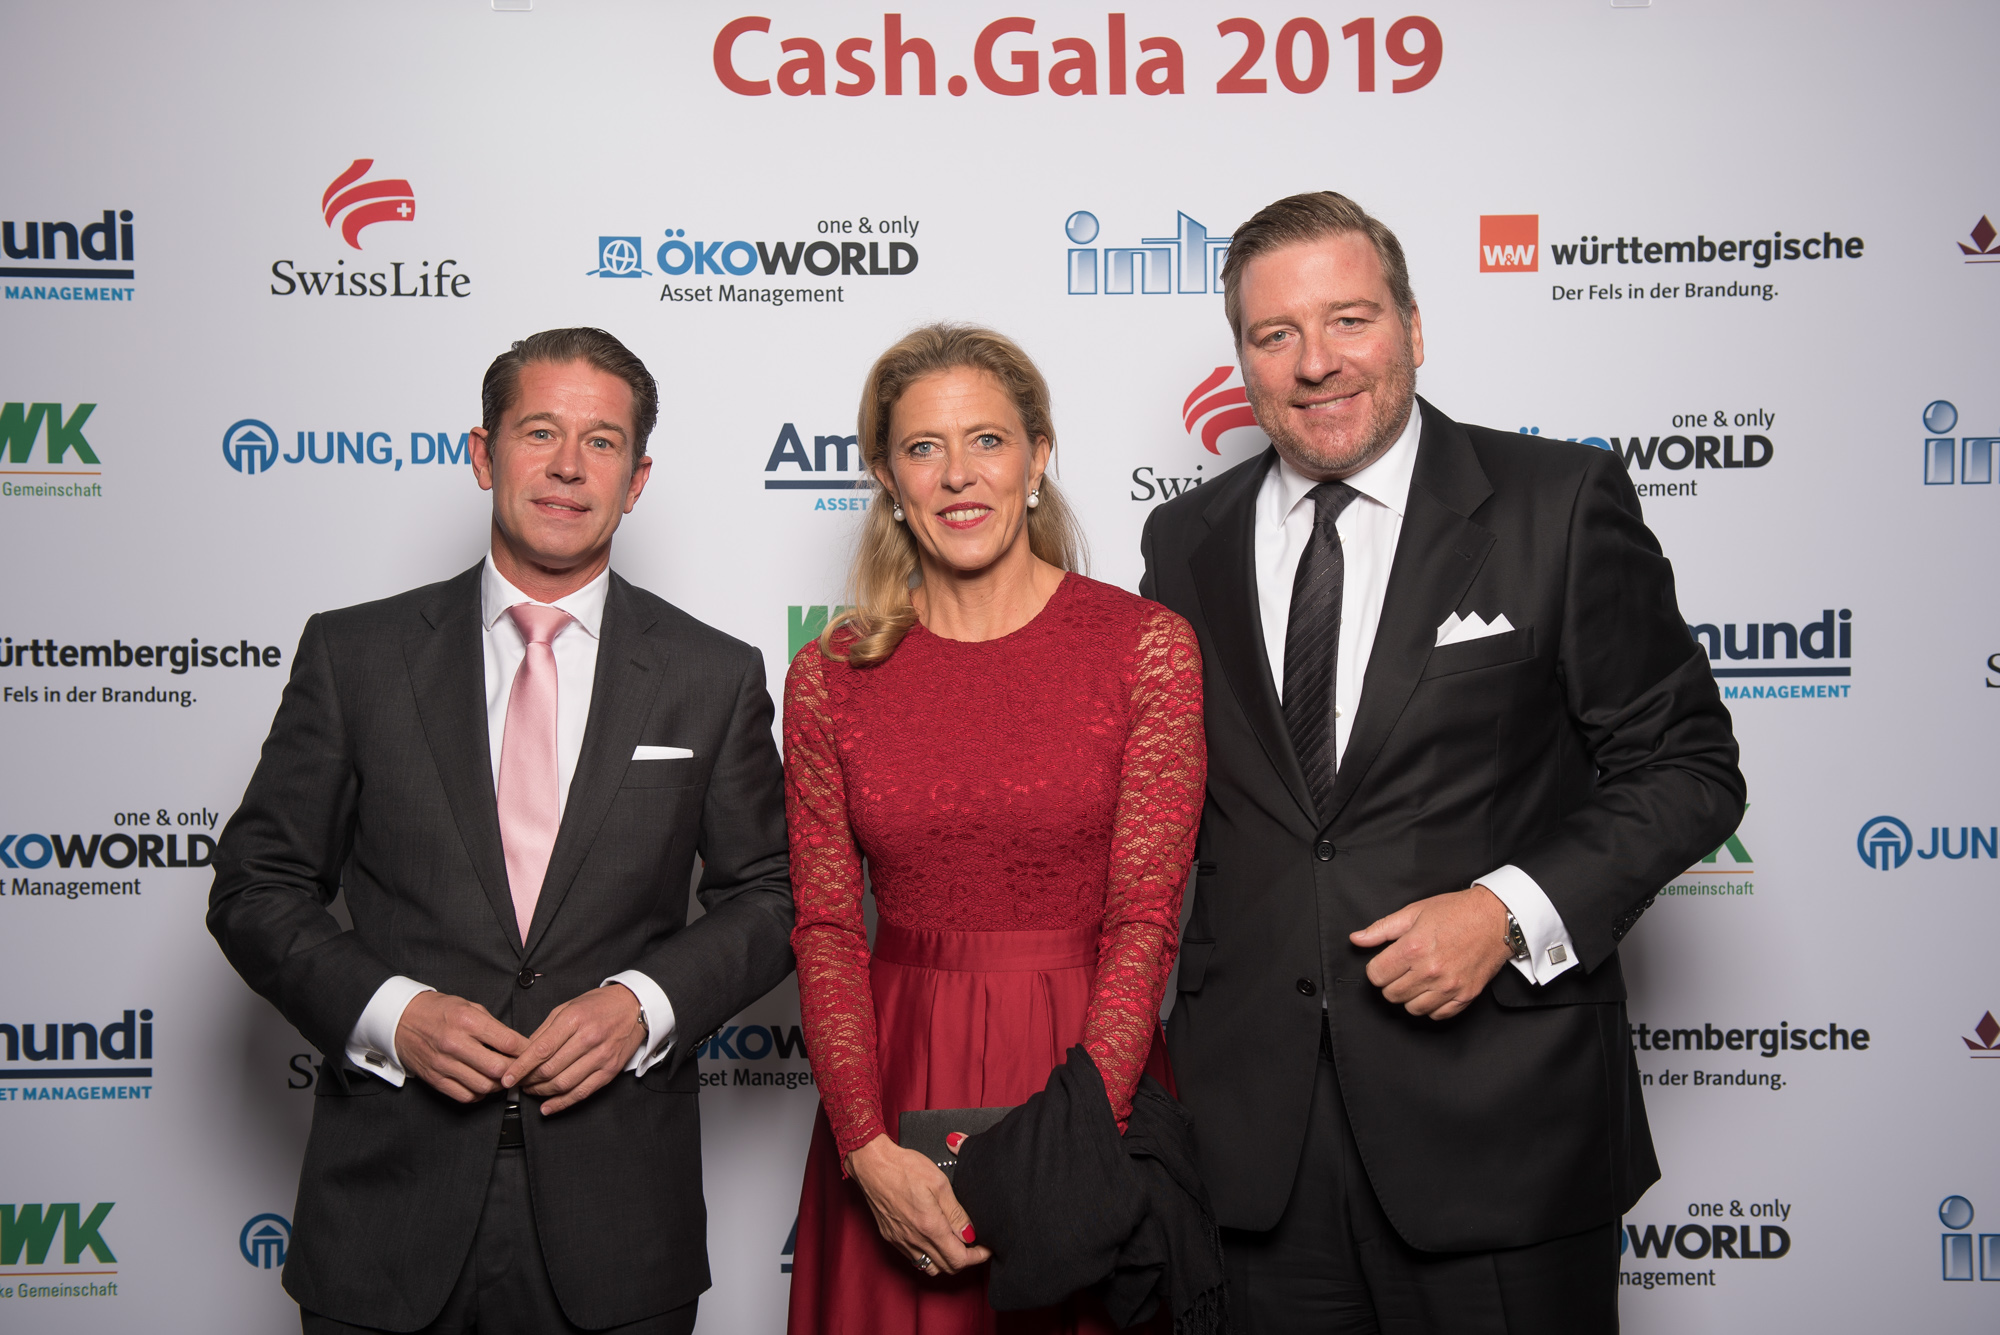 CashGala 2019 0041 AM DSC7062 in Cash.Gala 2019